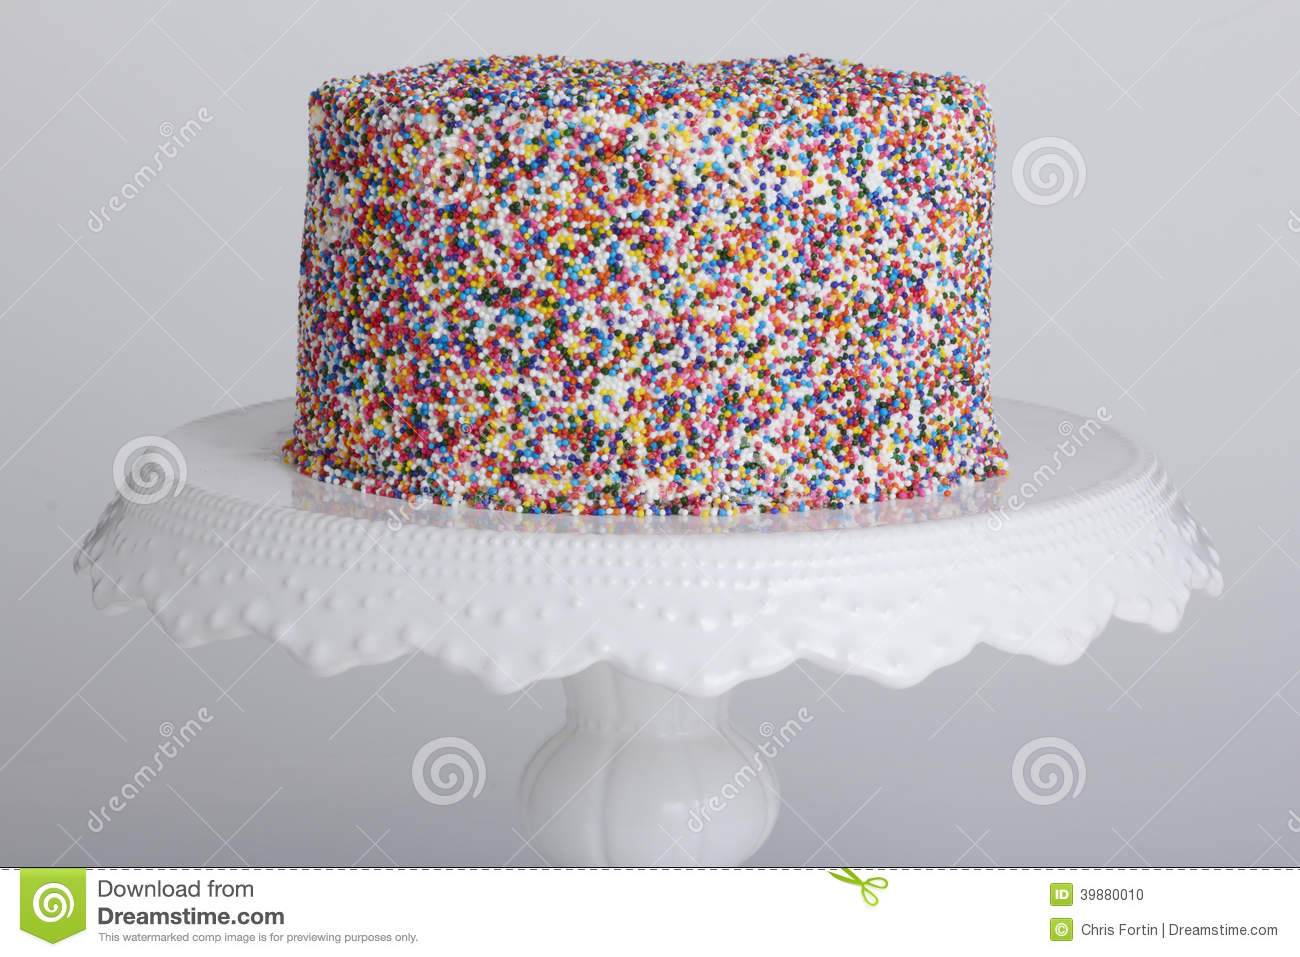 Cake with sprinkles